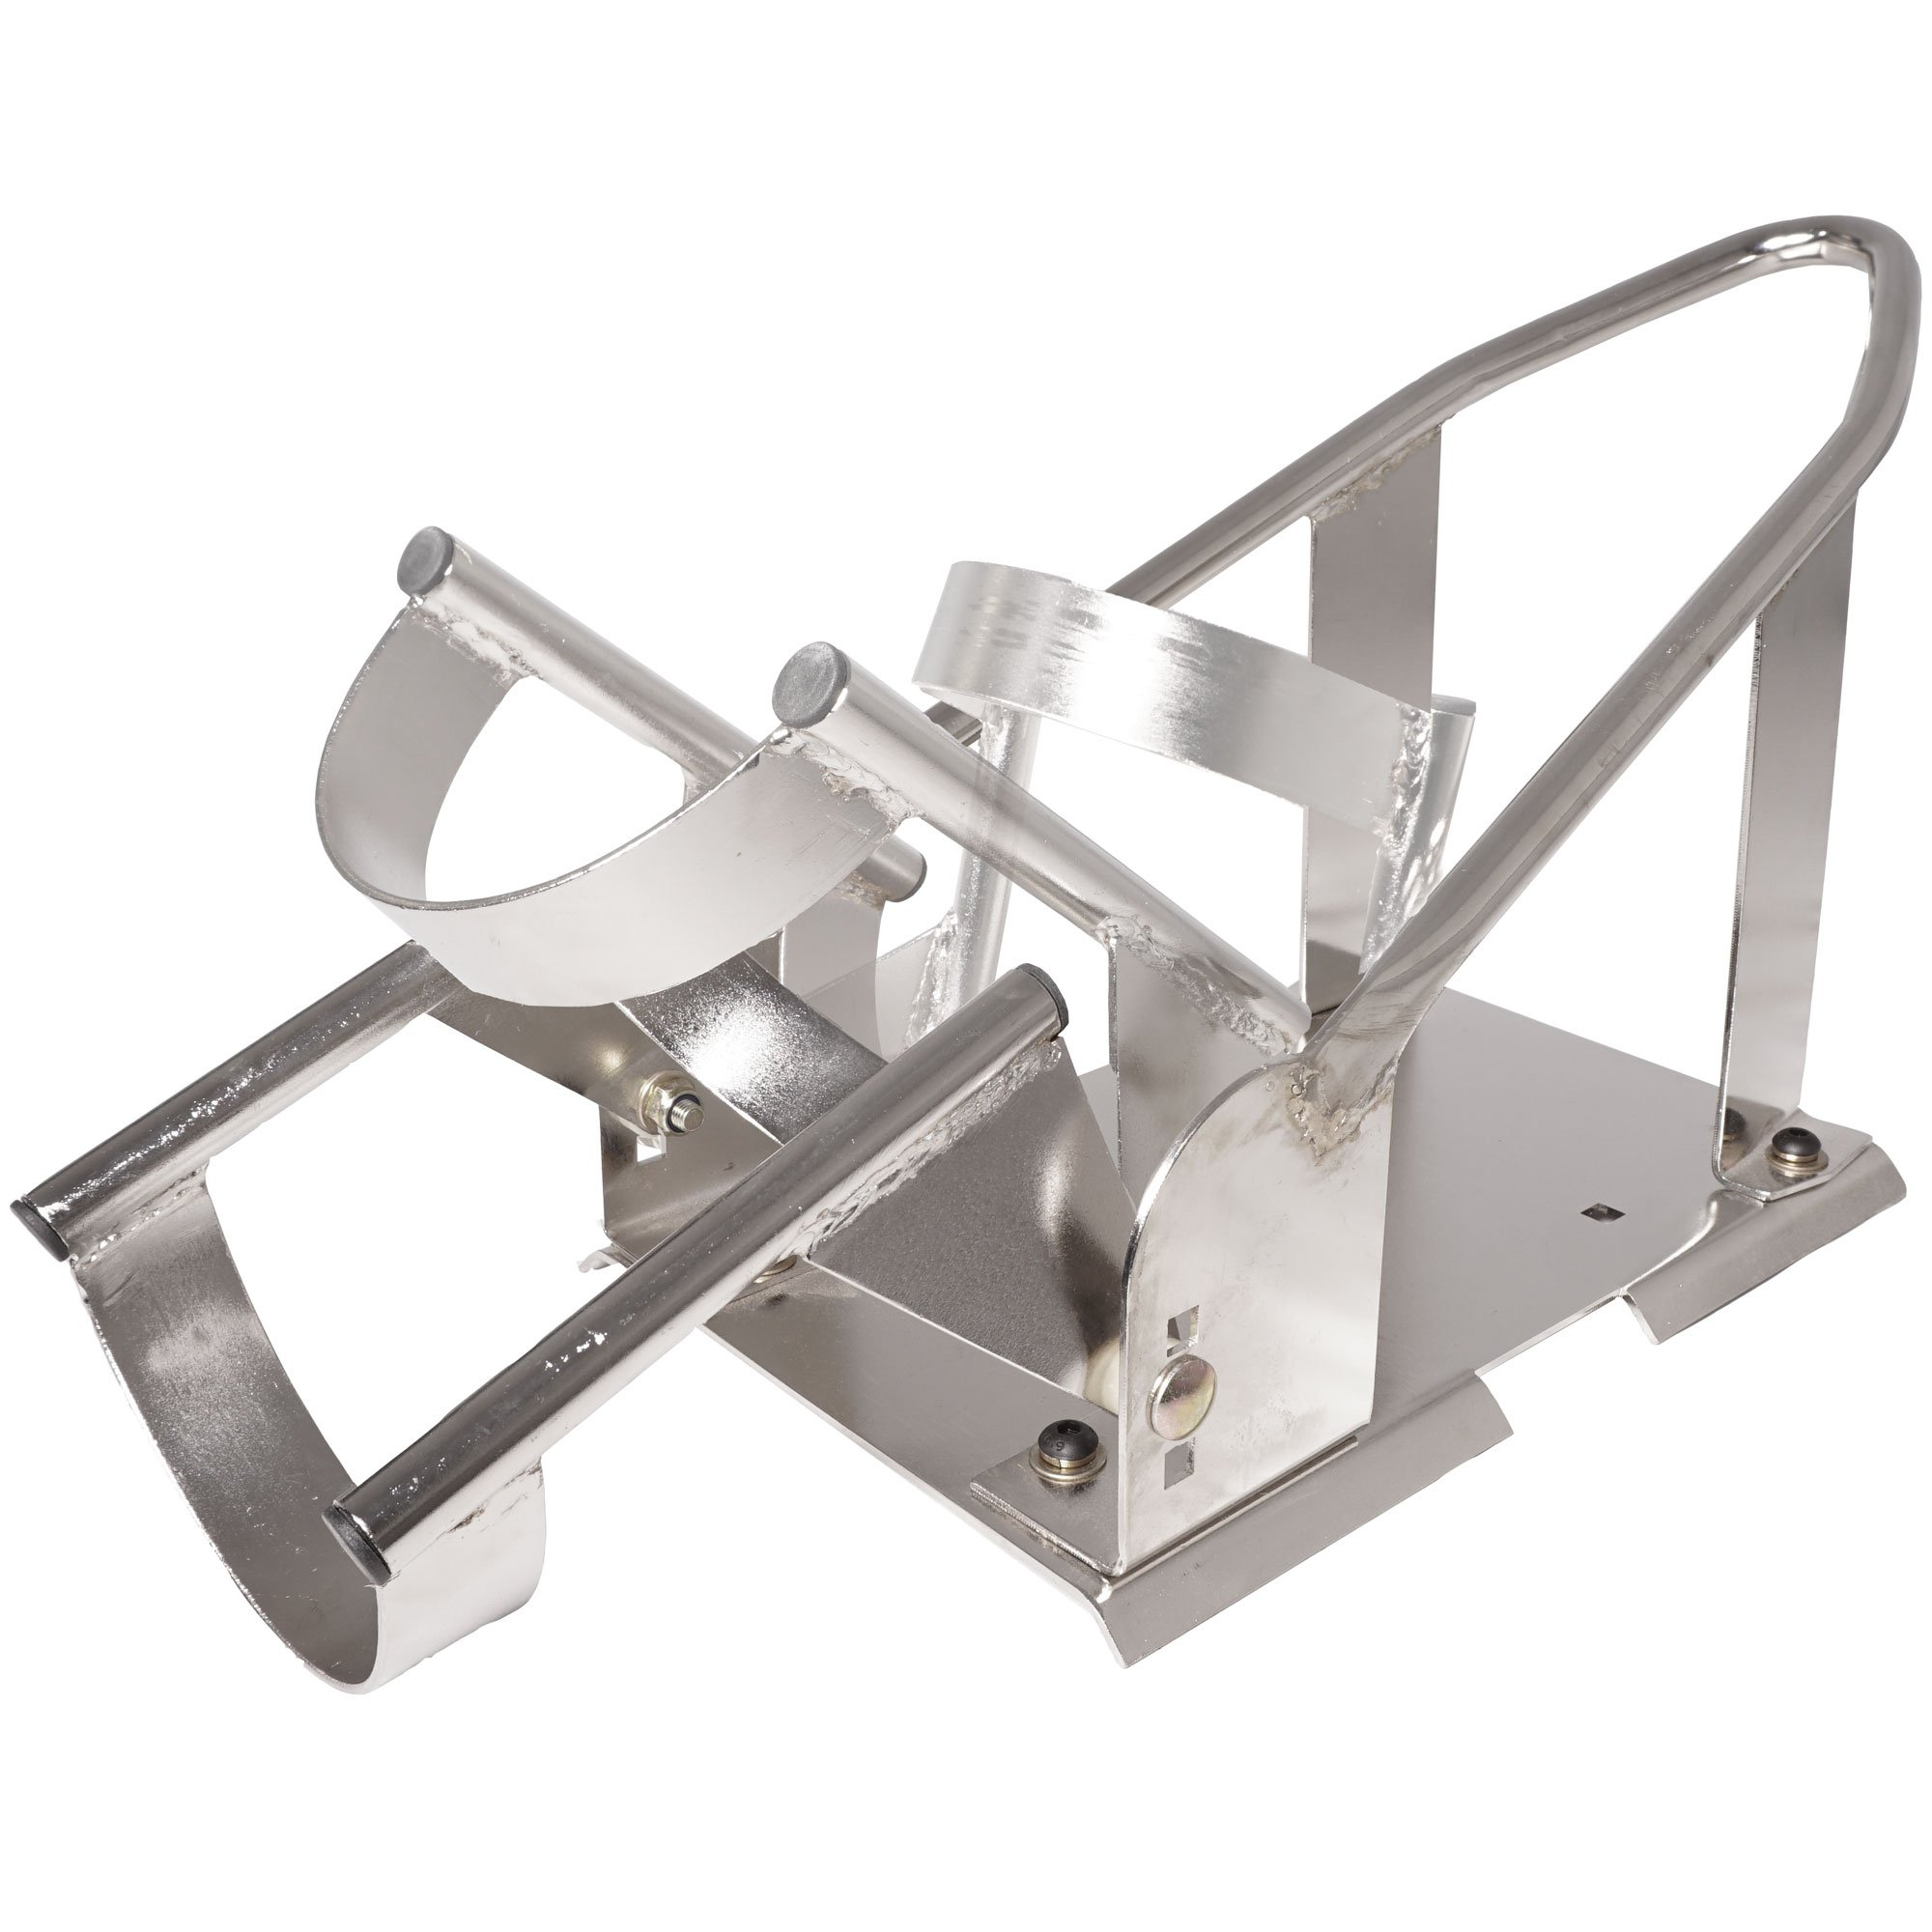 3 Position Adjustable Chrome Motorcycle Wheel Chock Stand Truck Trailer Mount by Titan Ramps (Image #4)